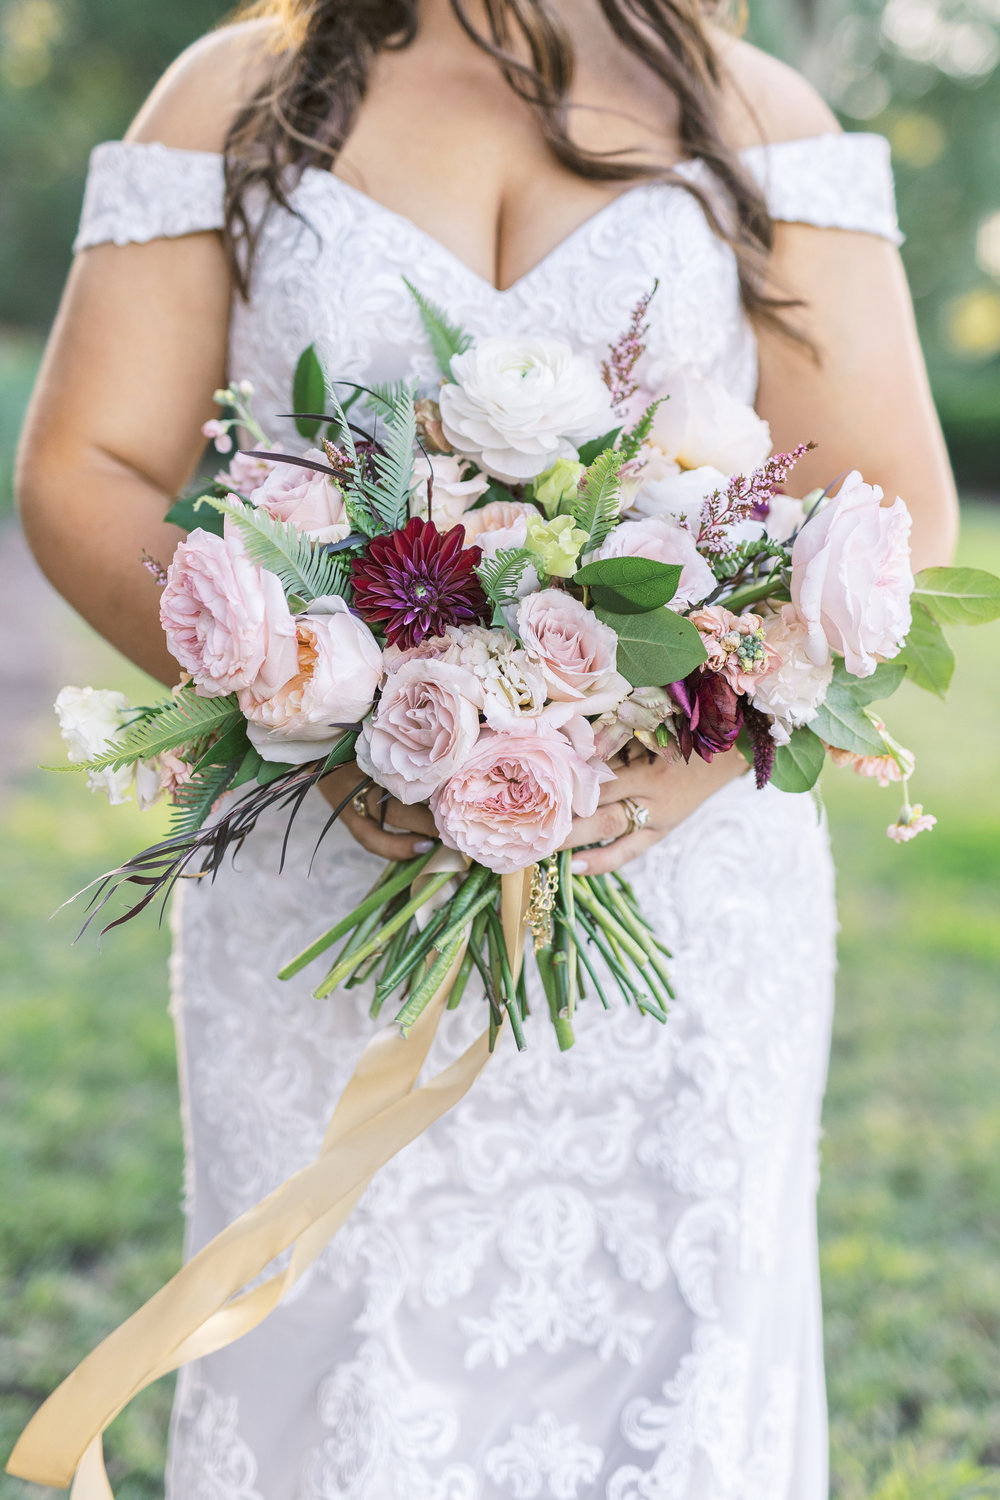 Photo by Catherine Ann Photography // Flowers by Petaloso